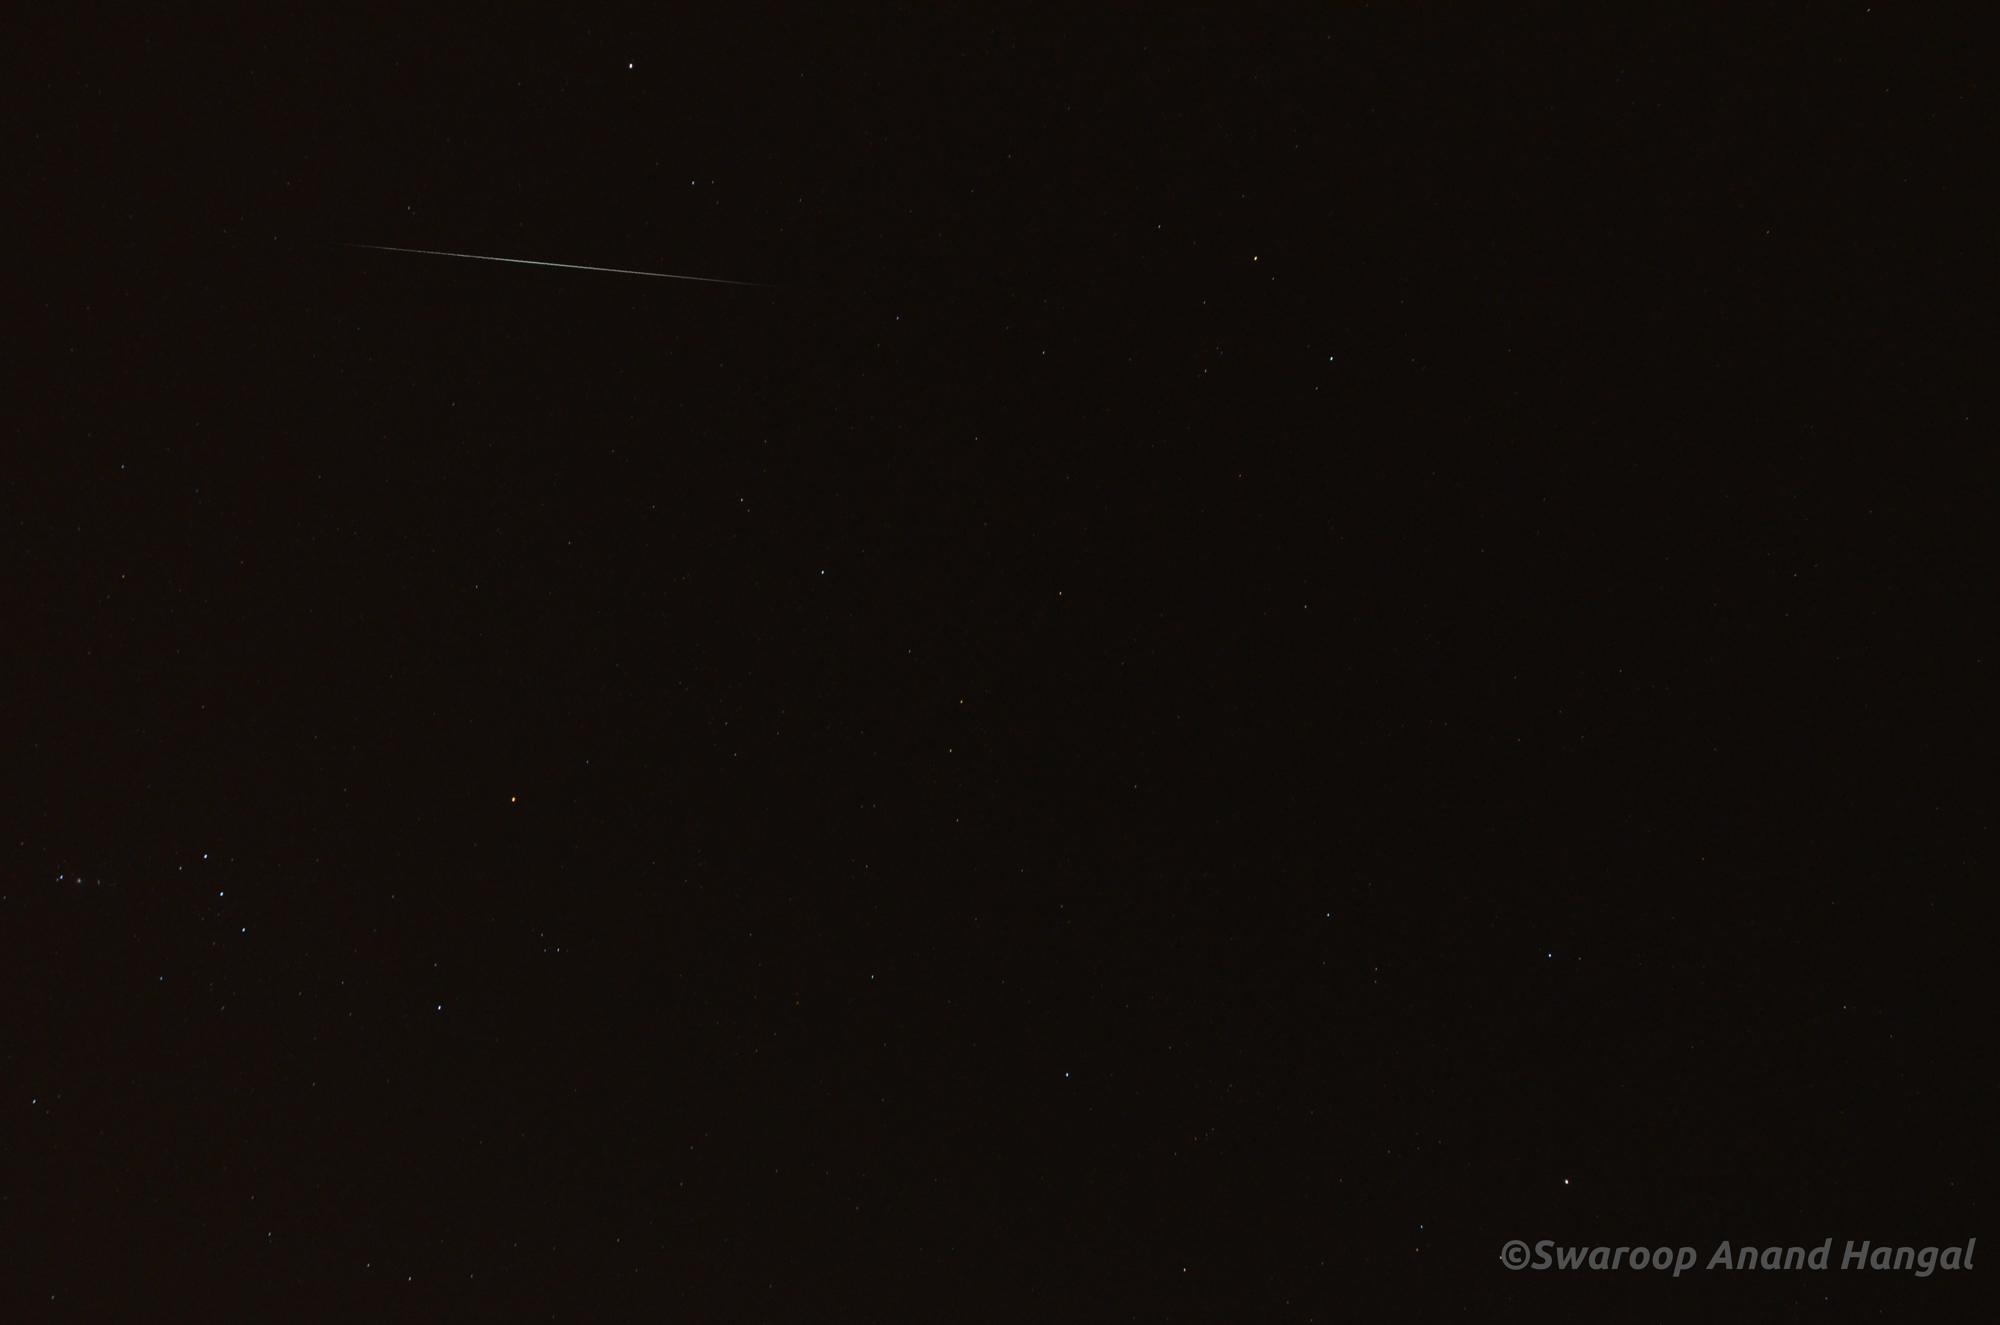 2012 Geminid Meteor over India